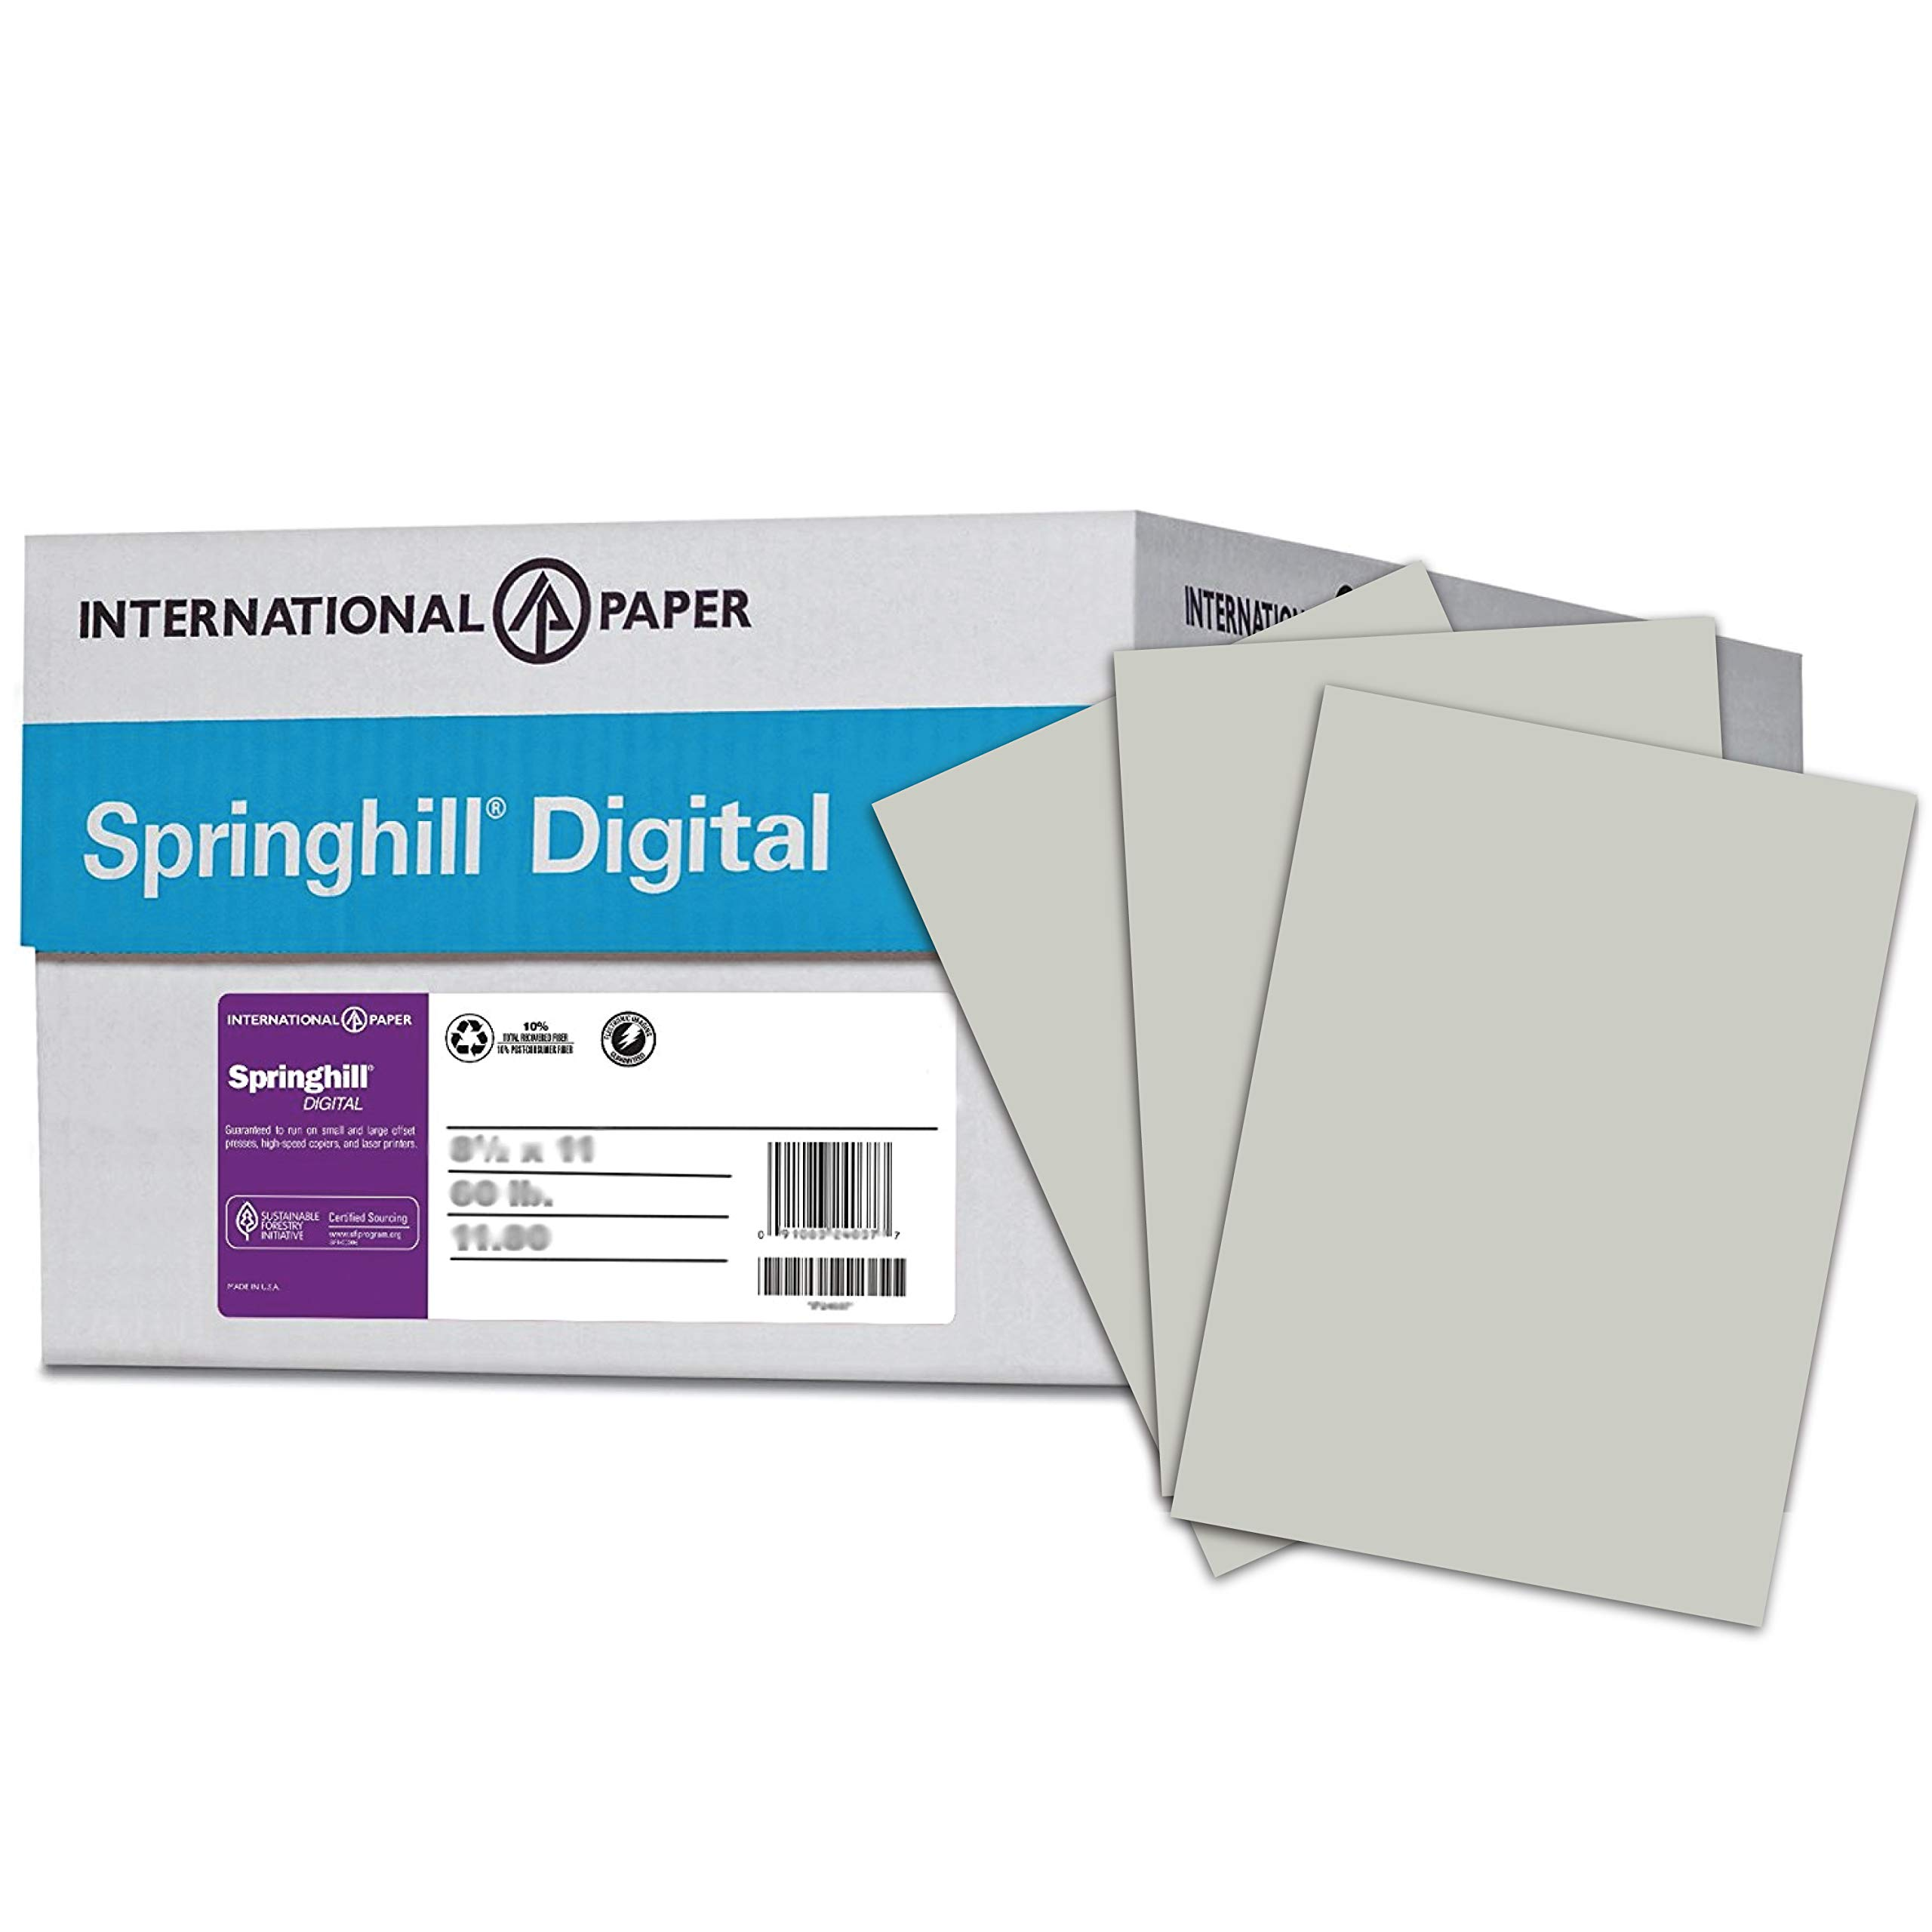 Springhill Colored Paper, Cardstock Paper, Gray Paper, 110lb, 199 gsm, 8.5 x 11, 8 Reams / 2,000 Sheets - Index Card Stock, Thick Paper (065300C) by Springhill